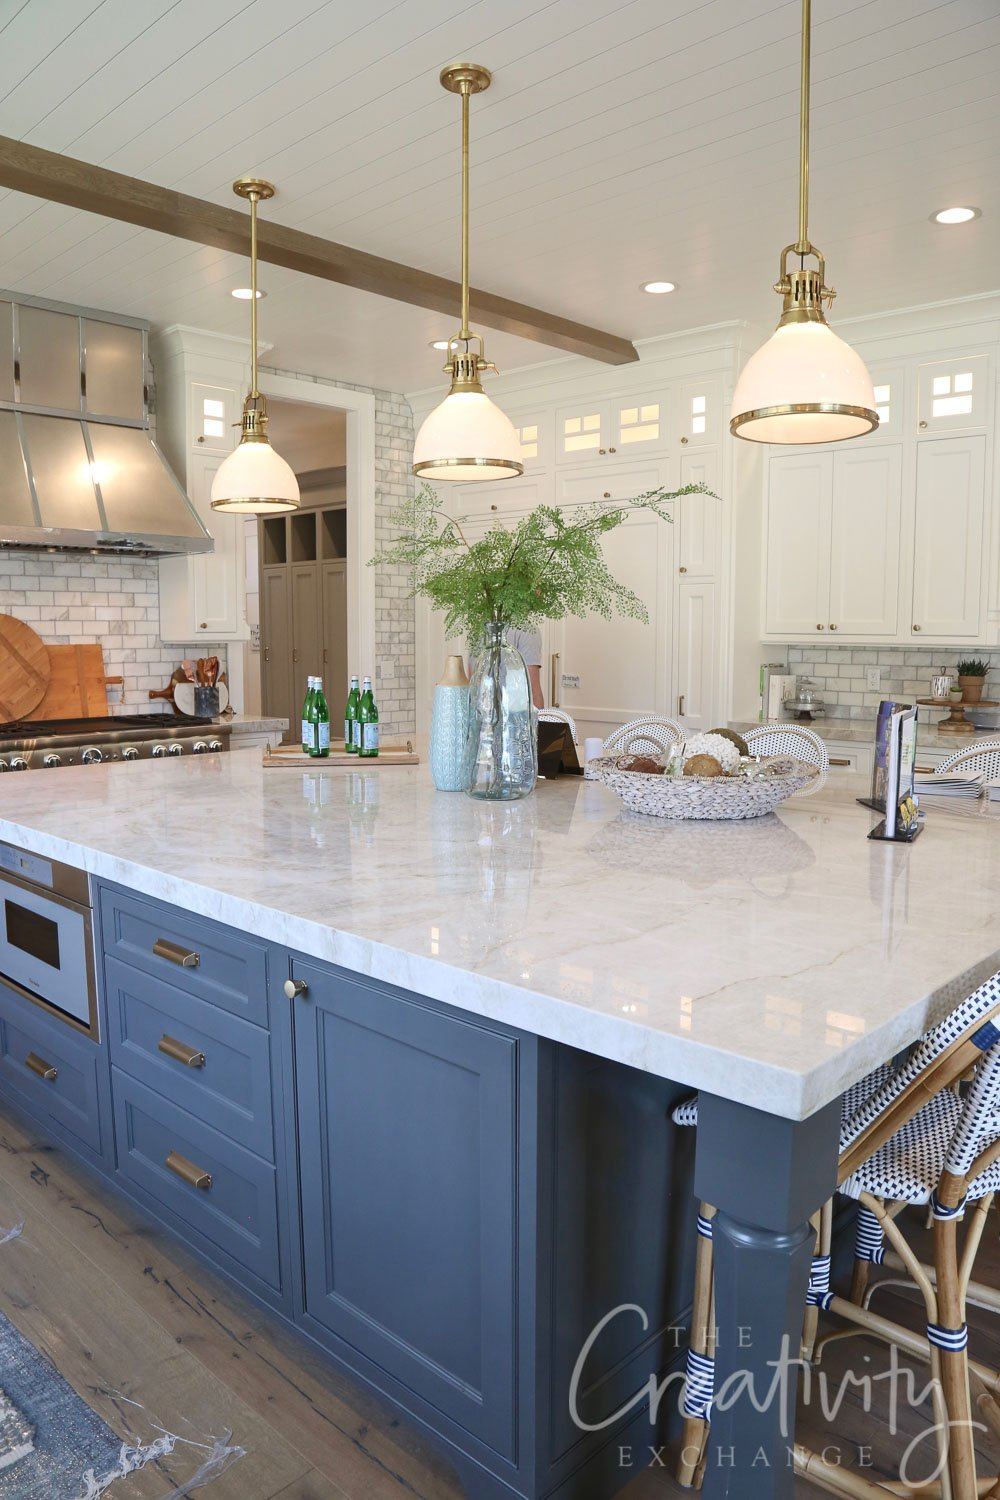 Kitchen island color is Farrow and Ball Downpipe